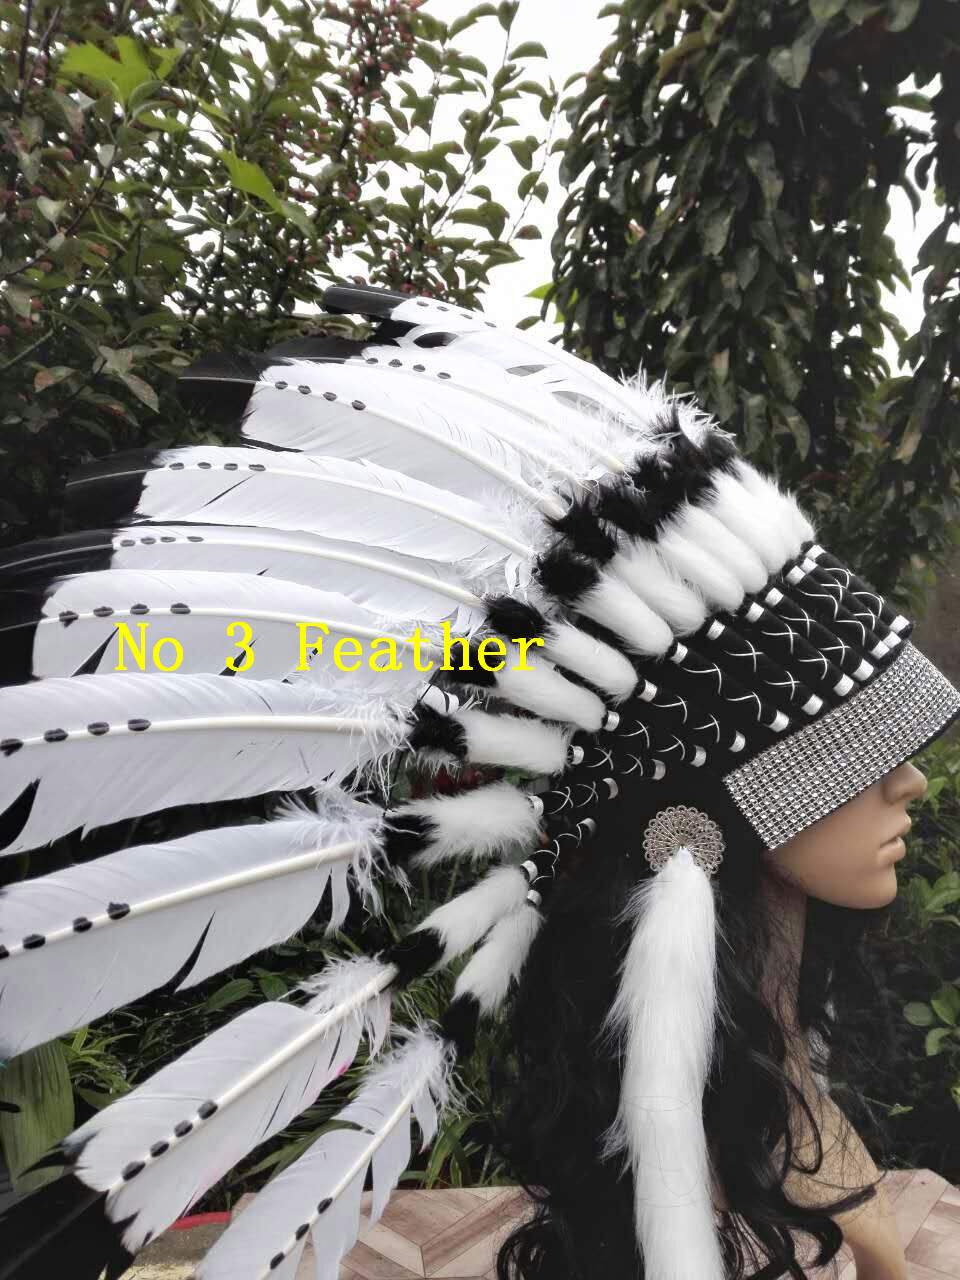 21inch High Feather Headdress Headpiece Feather Hat Halloween Feather Costume